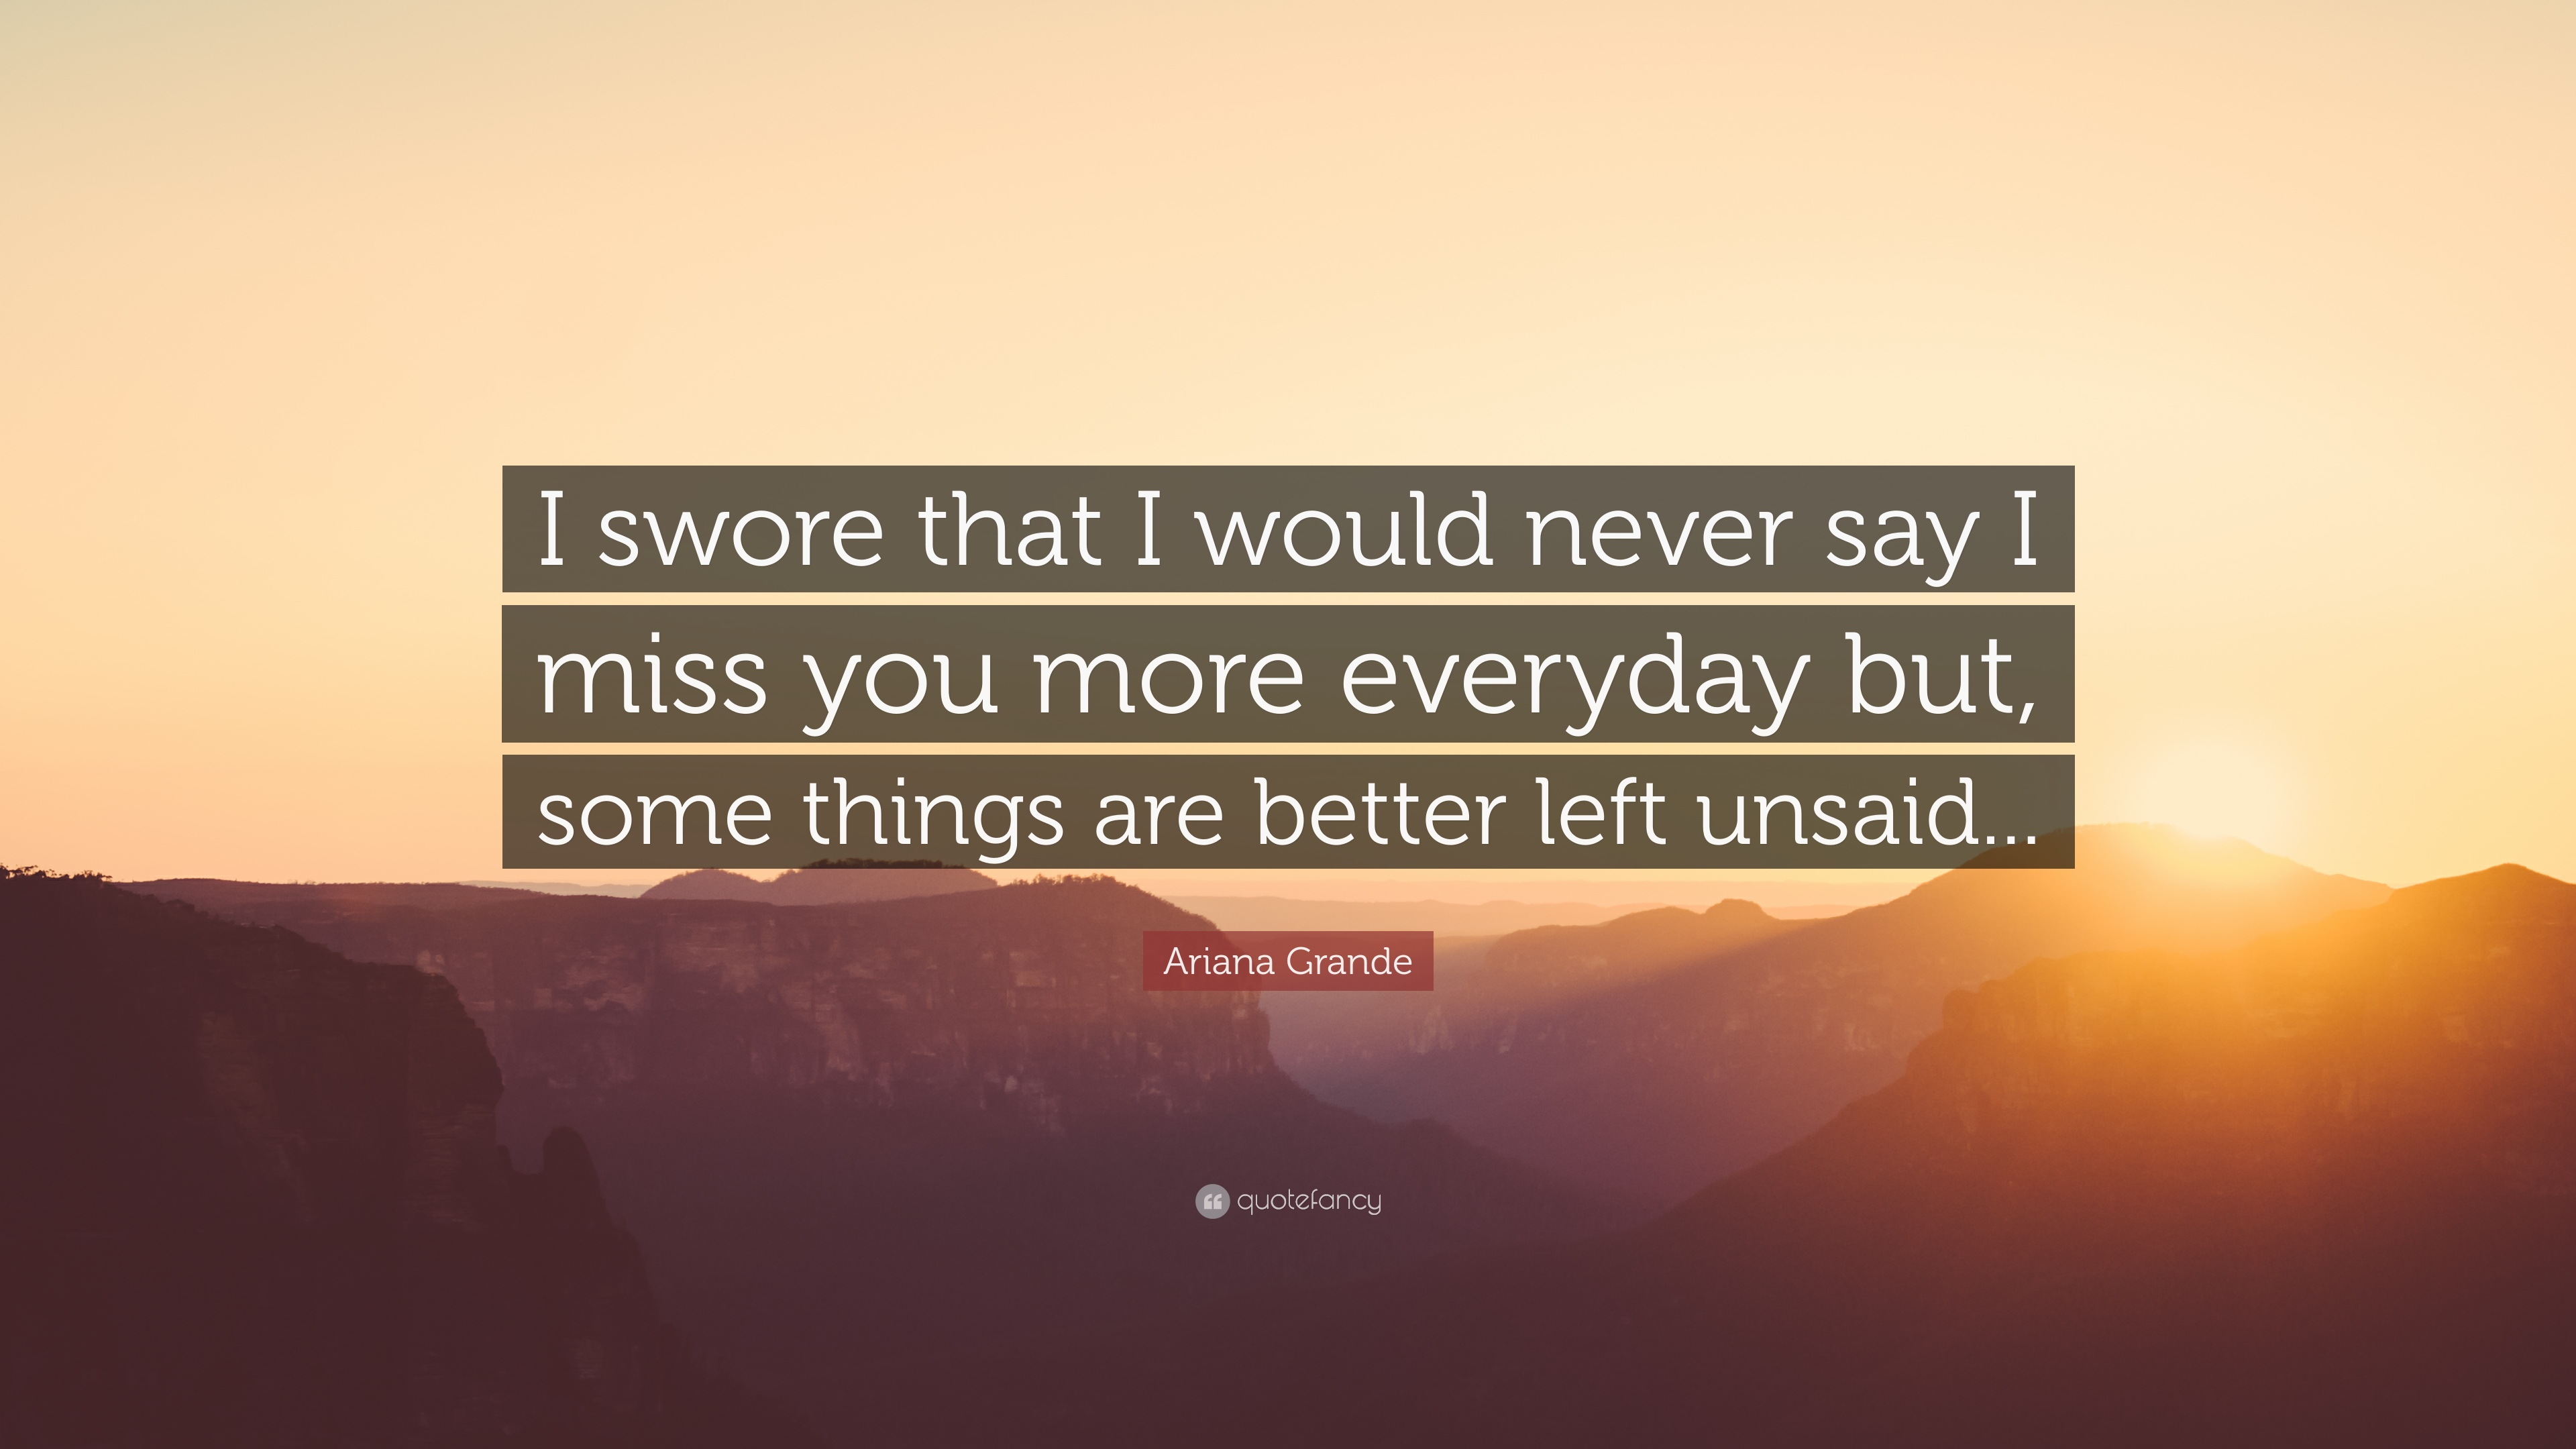 Ariana Grande Quote I Swore That I Would Never Say I Miss You More